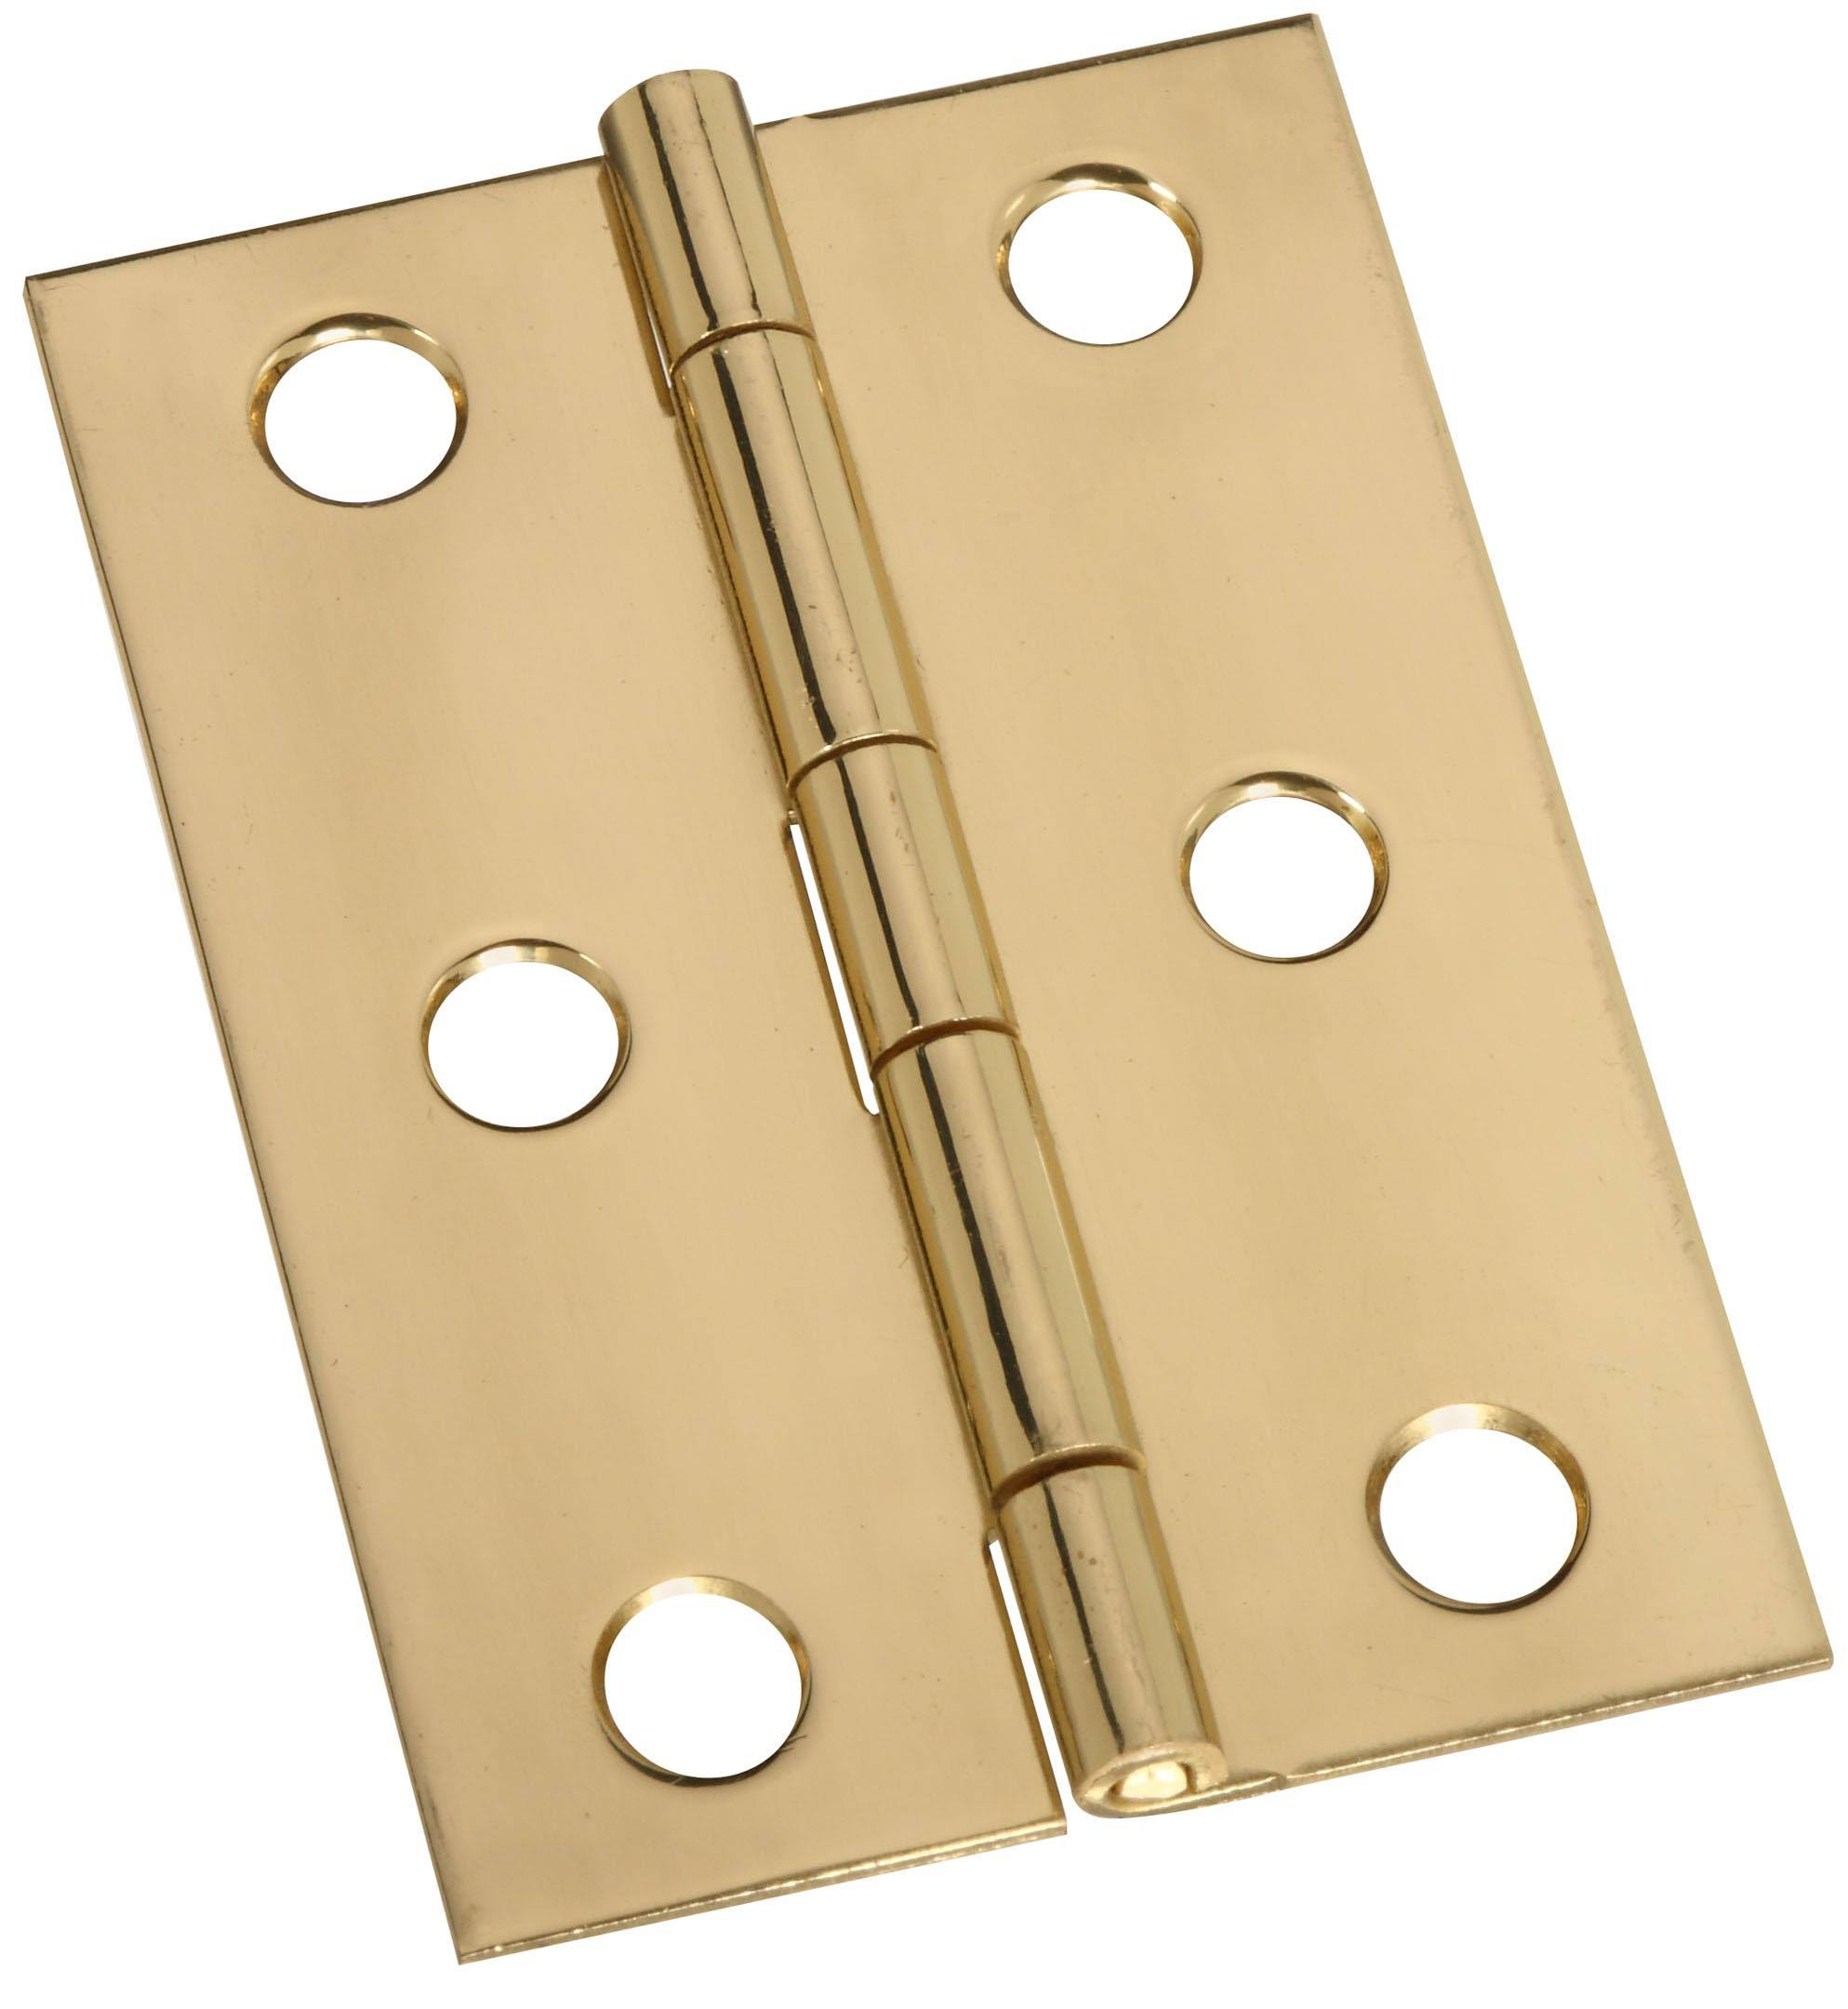 "National Hardware Solid Hinge - Brass, 2-1/2"" X 1-3/4"", 2 Count"